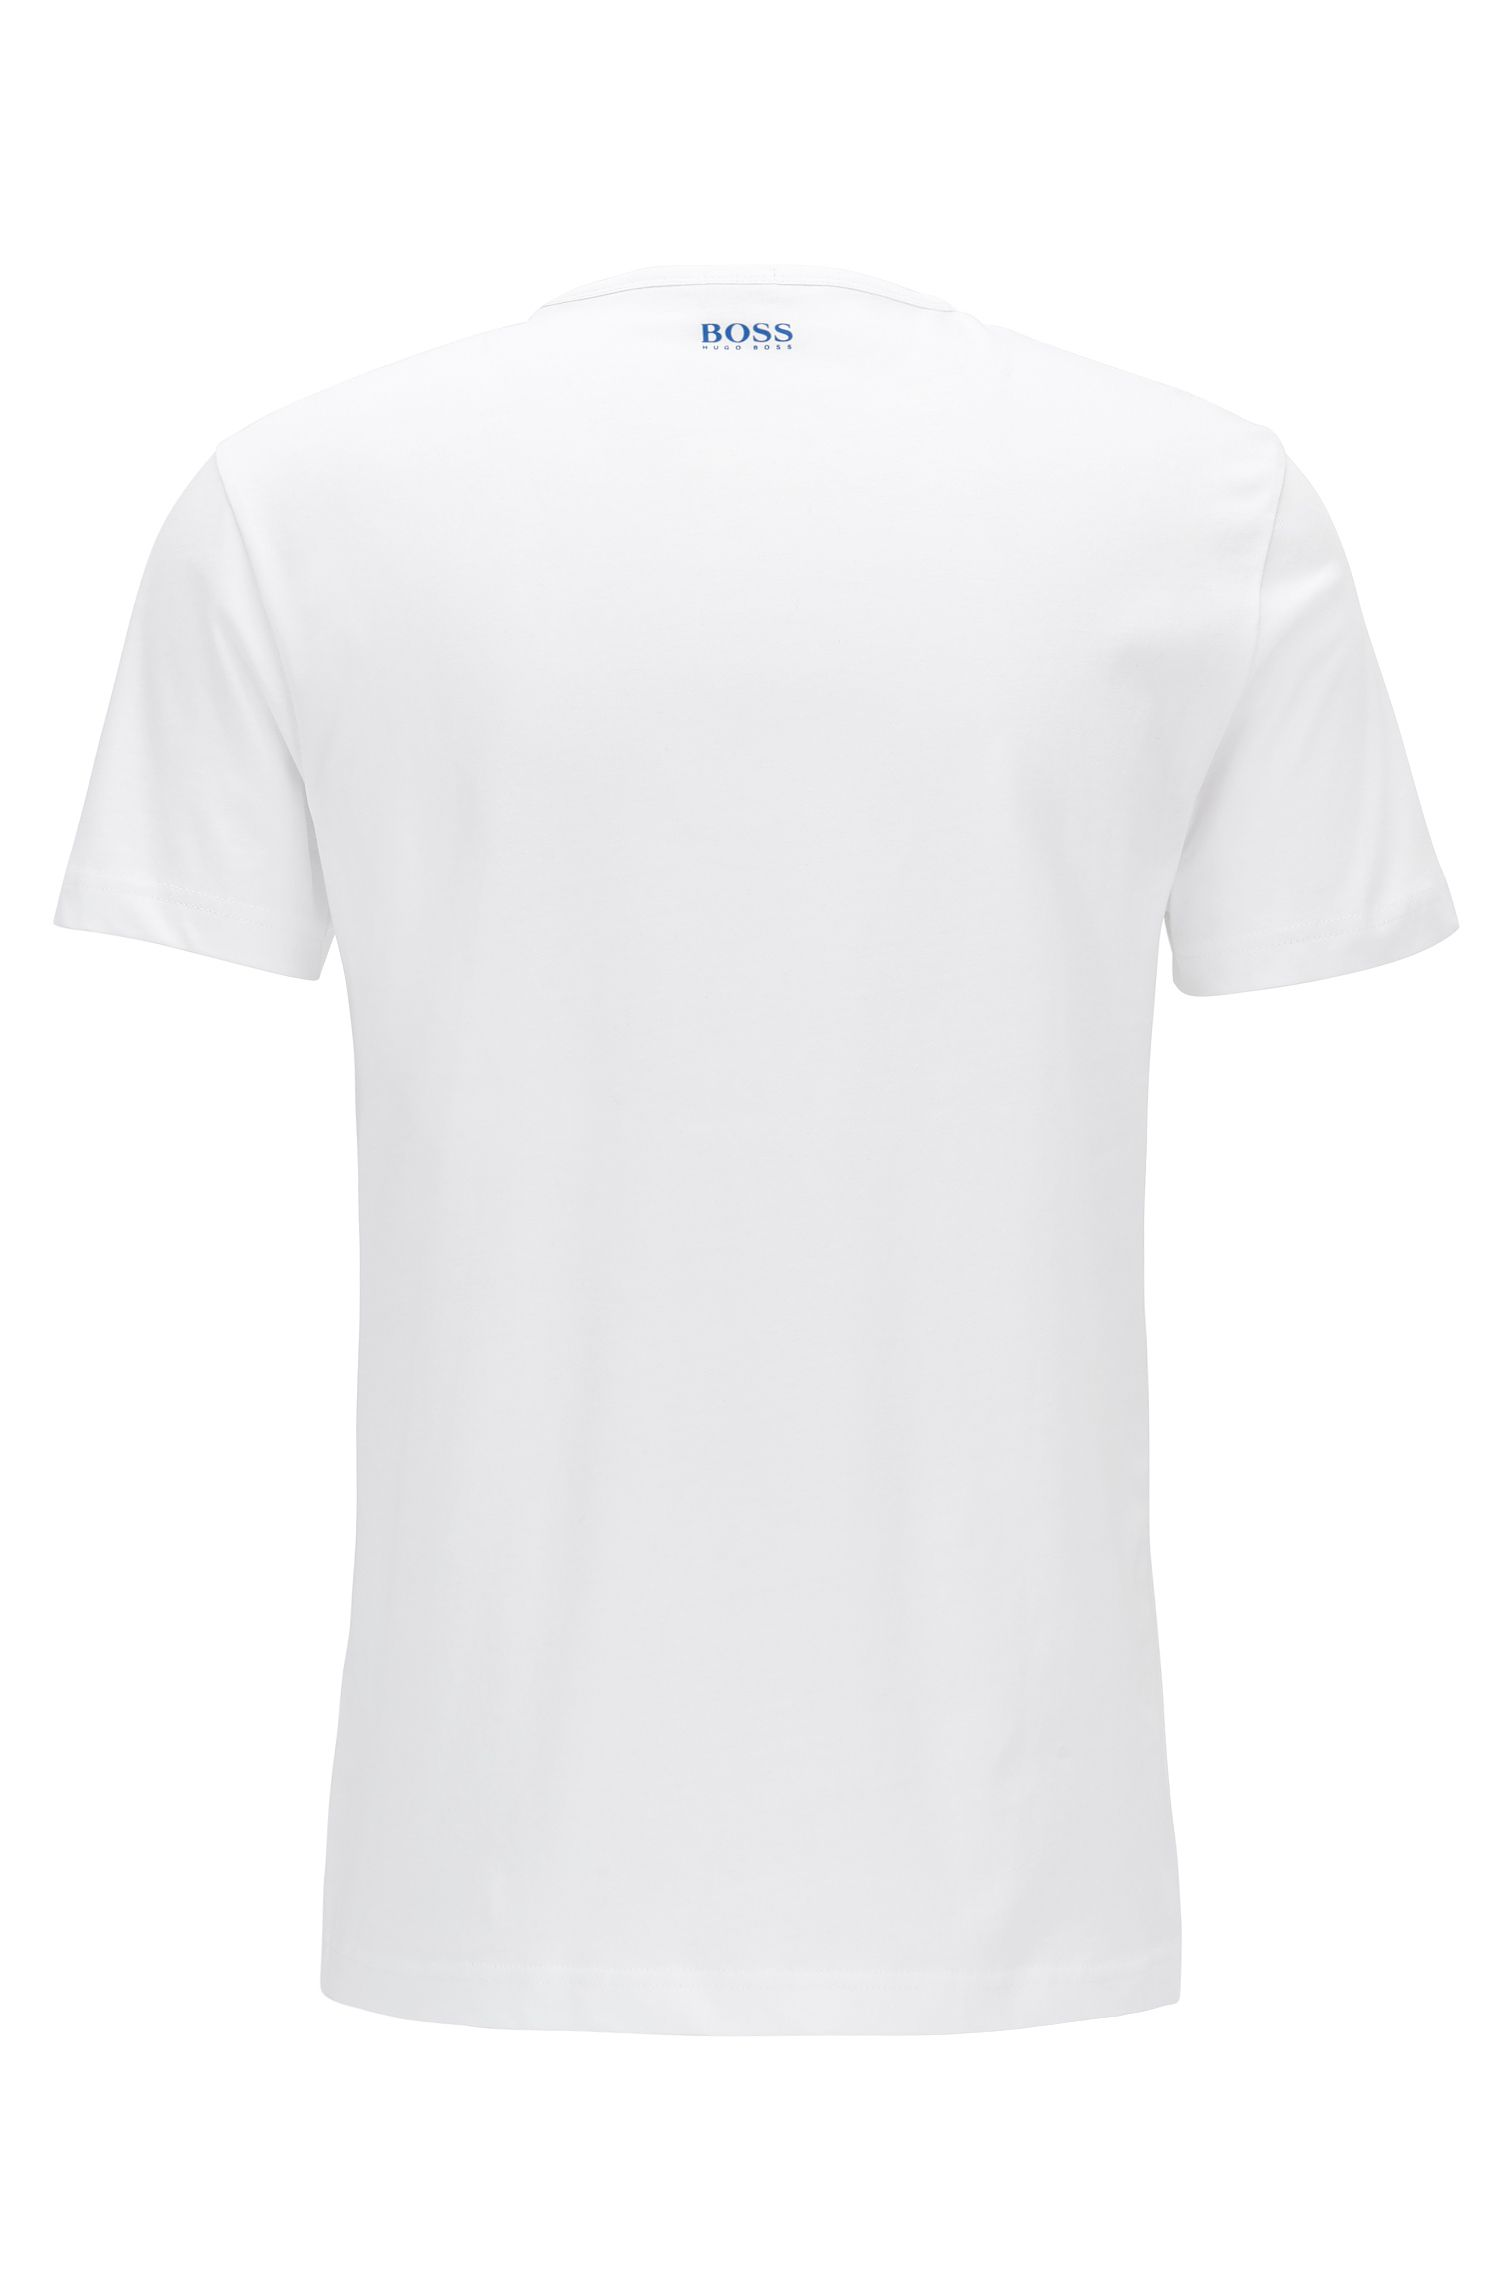 Regular-fit logo T-shirt in cotton jersey